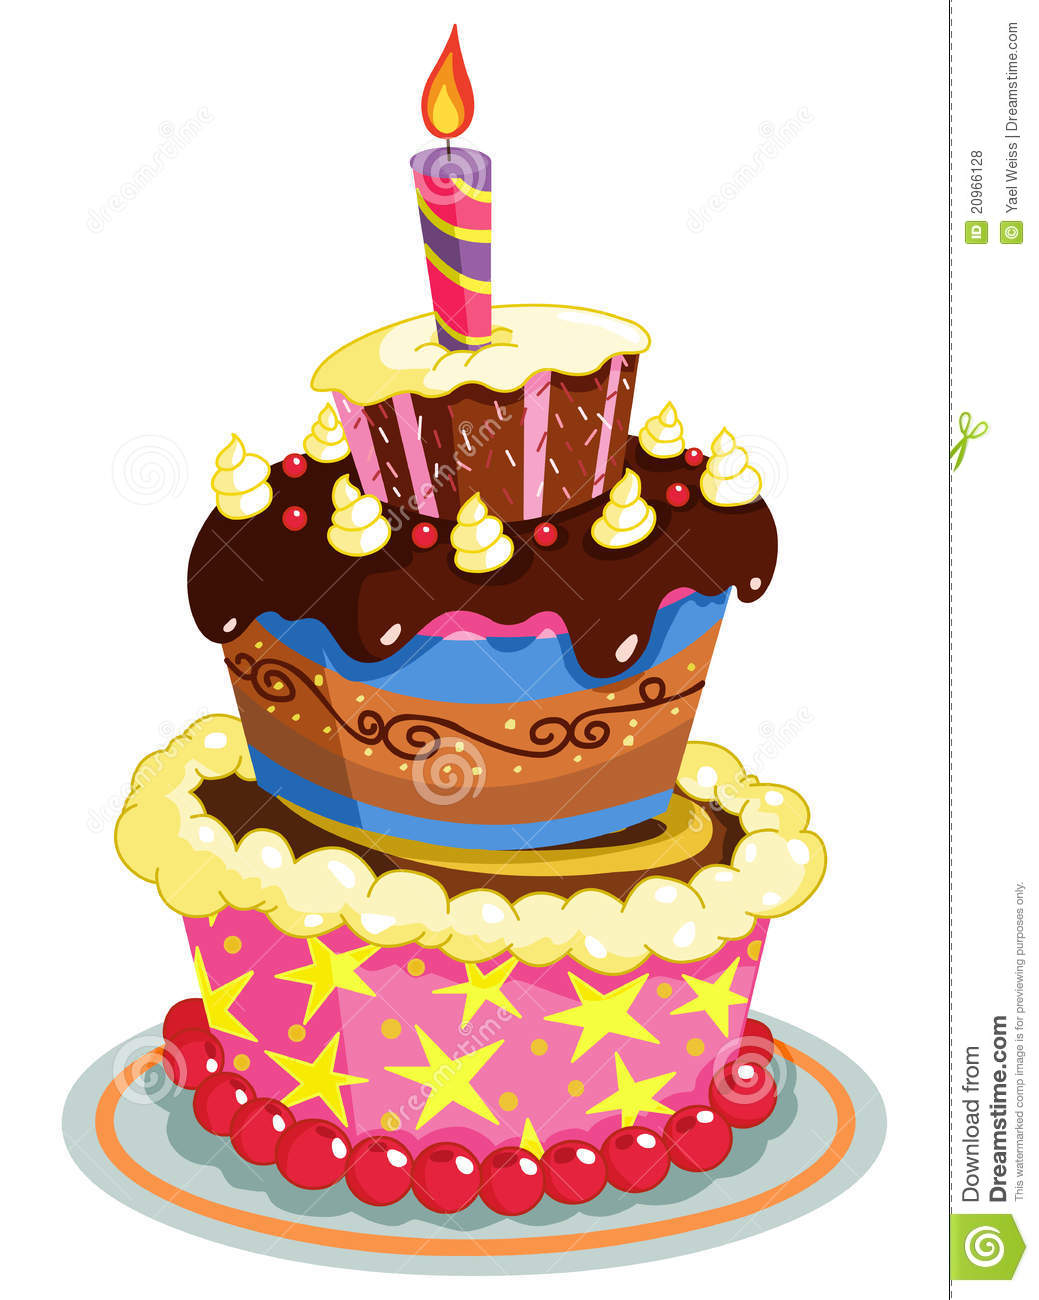 Birthday Cake Royalty Free Stock Photos - Image: 20966128